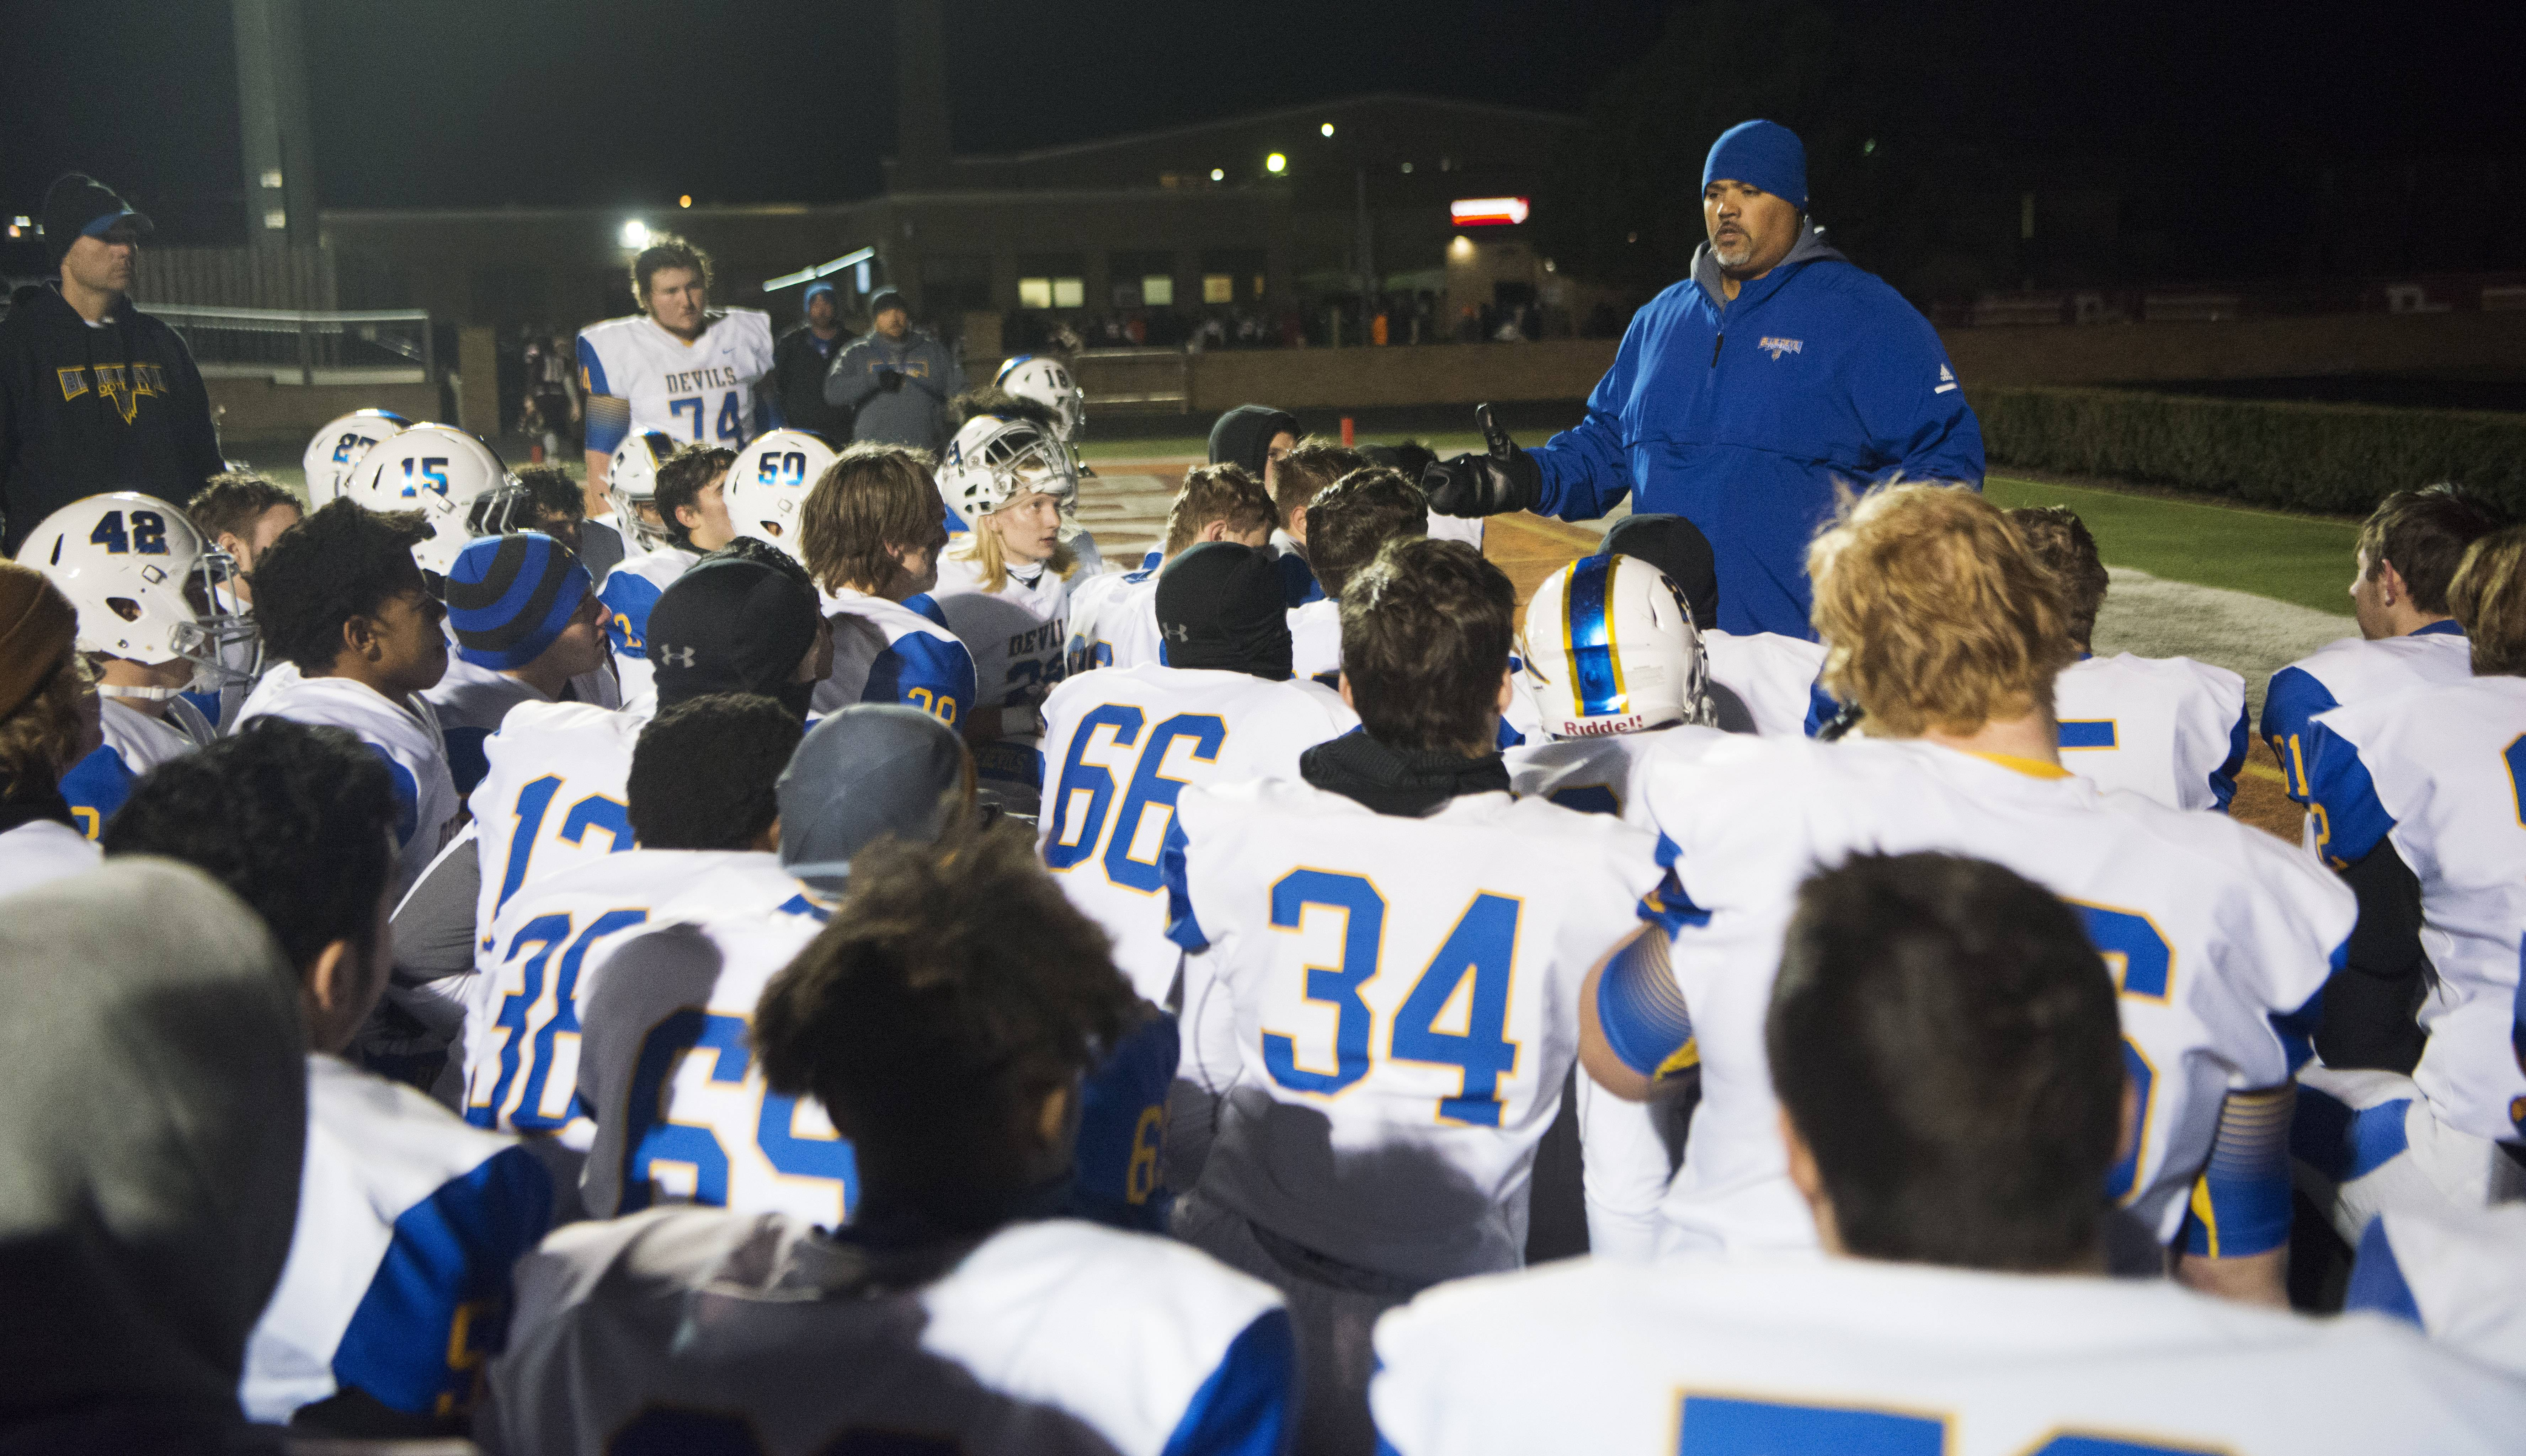 Warren head coach Brian McNulty talks to his team in the end zone following the Blue Devils' 20-0 loss to Brother Rice during the Class 8A state quarterfinal in Chicago Saturday.